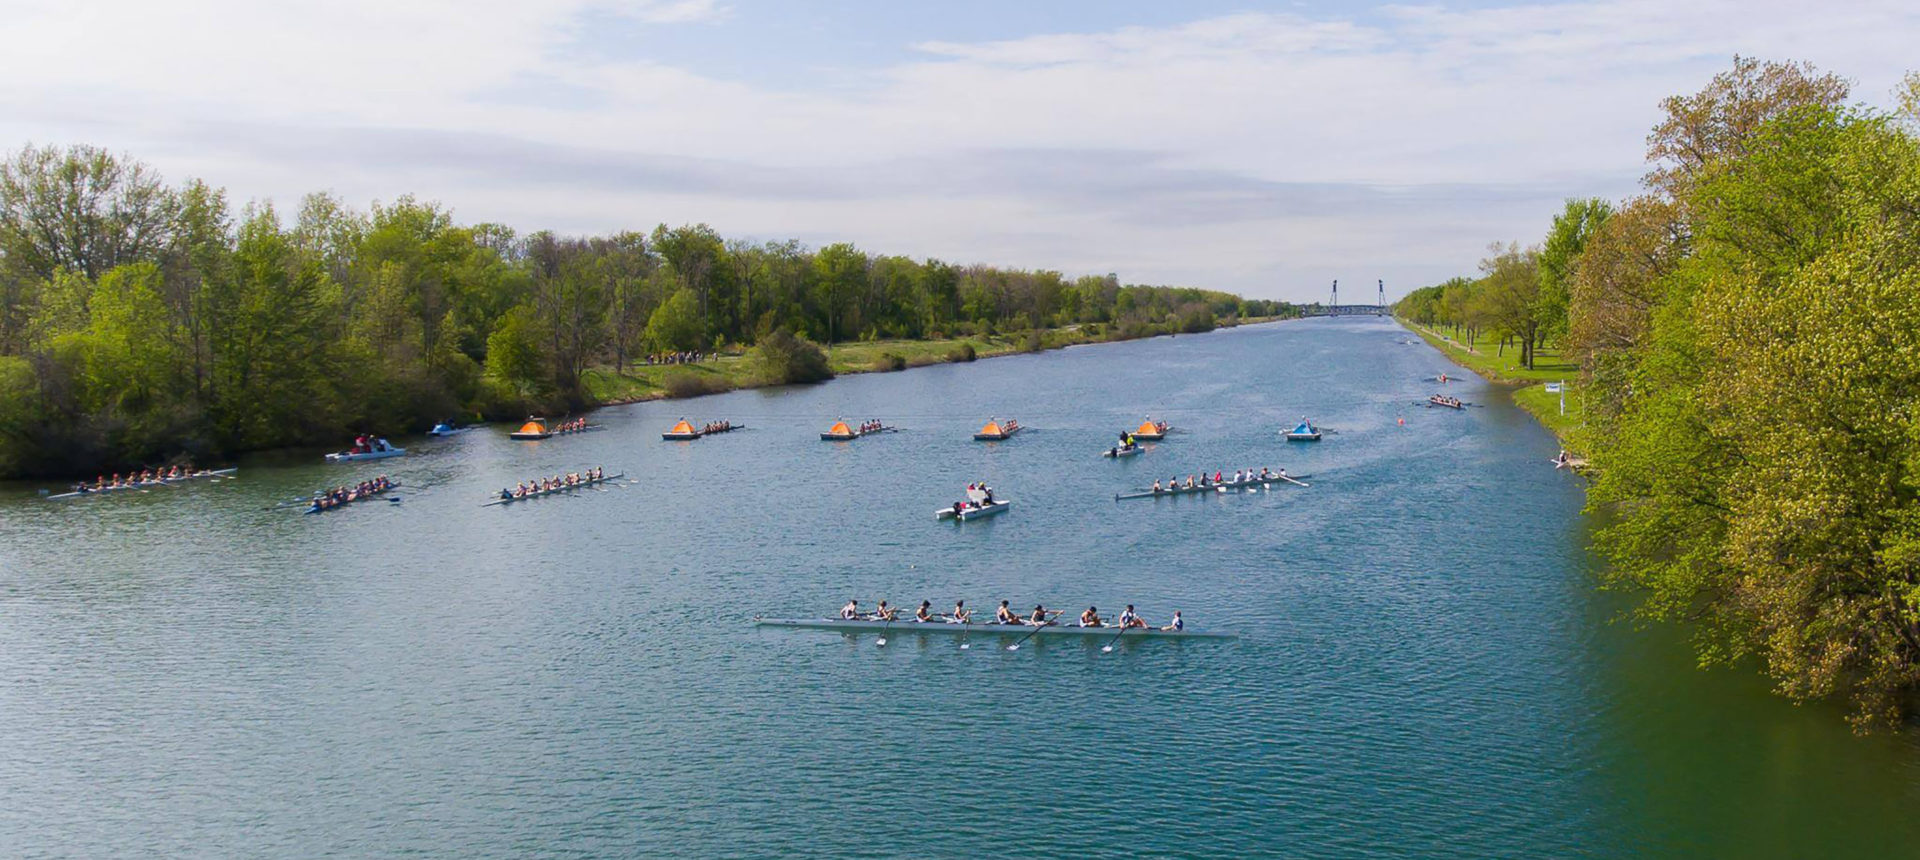 Welland, Ontario to host 2020 National Rowing Championships